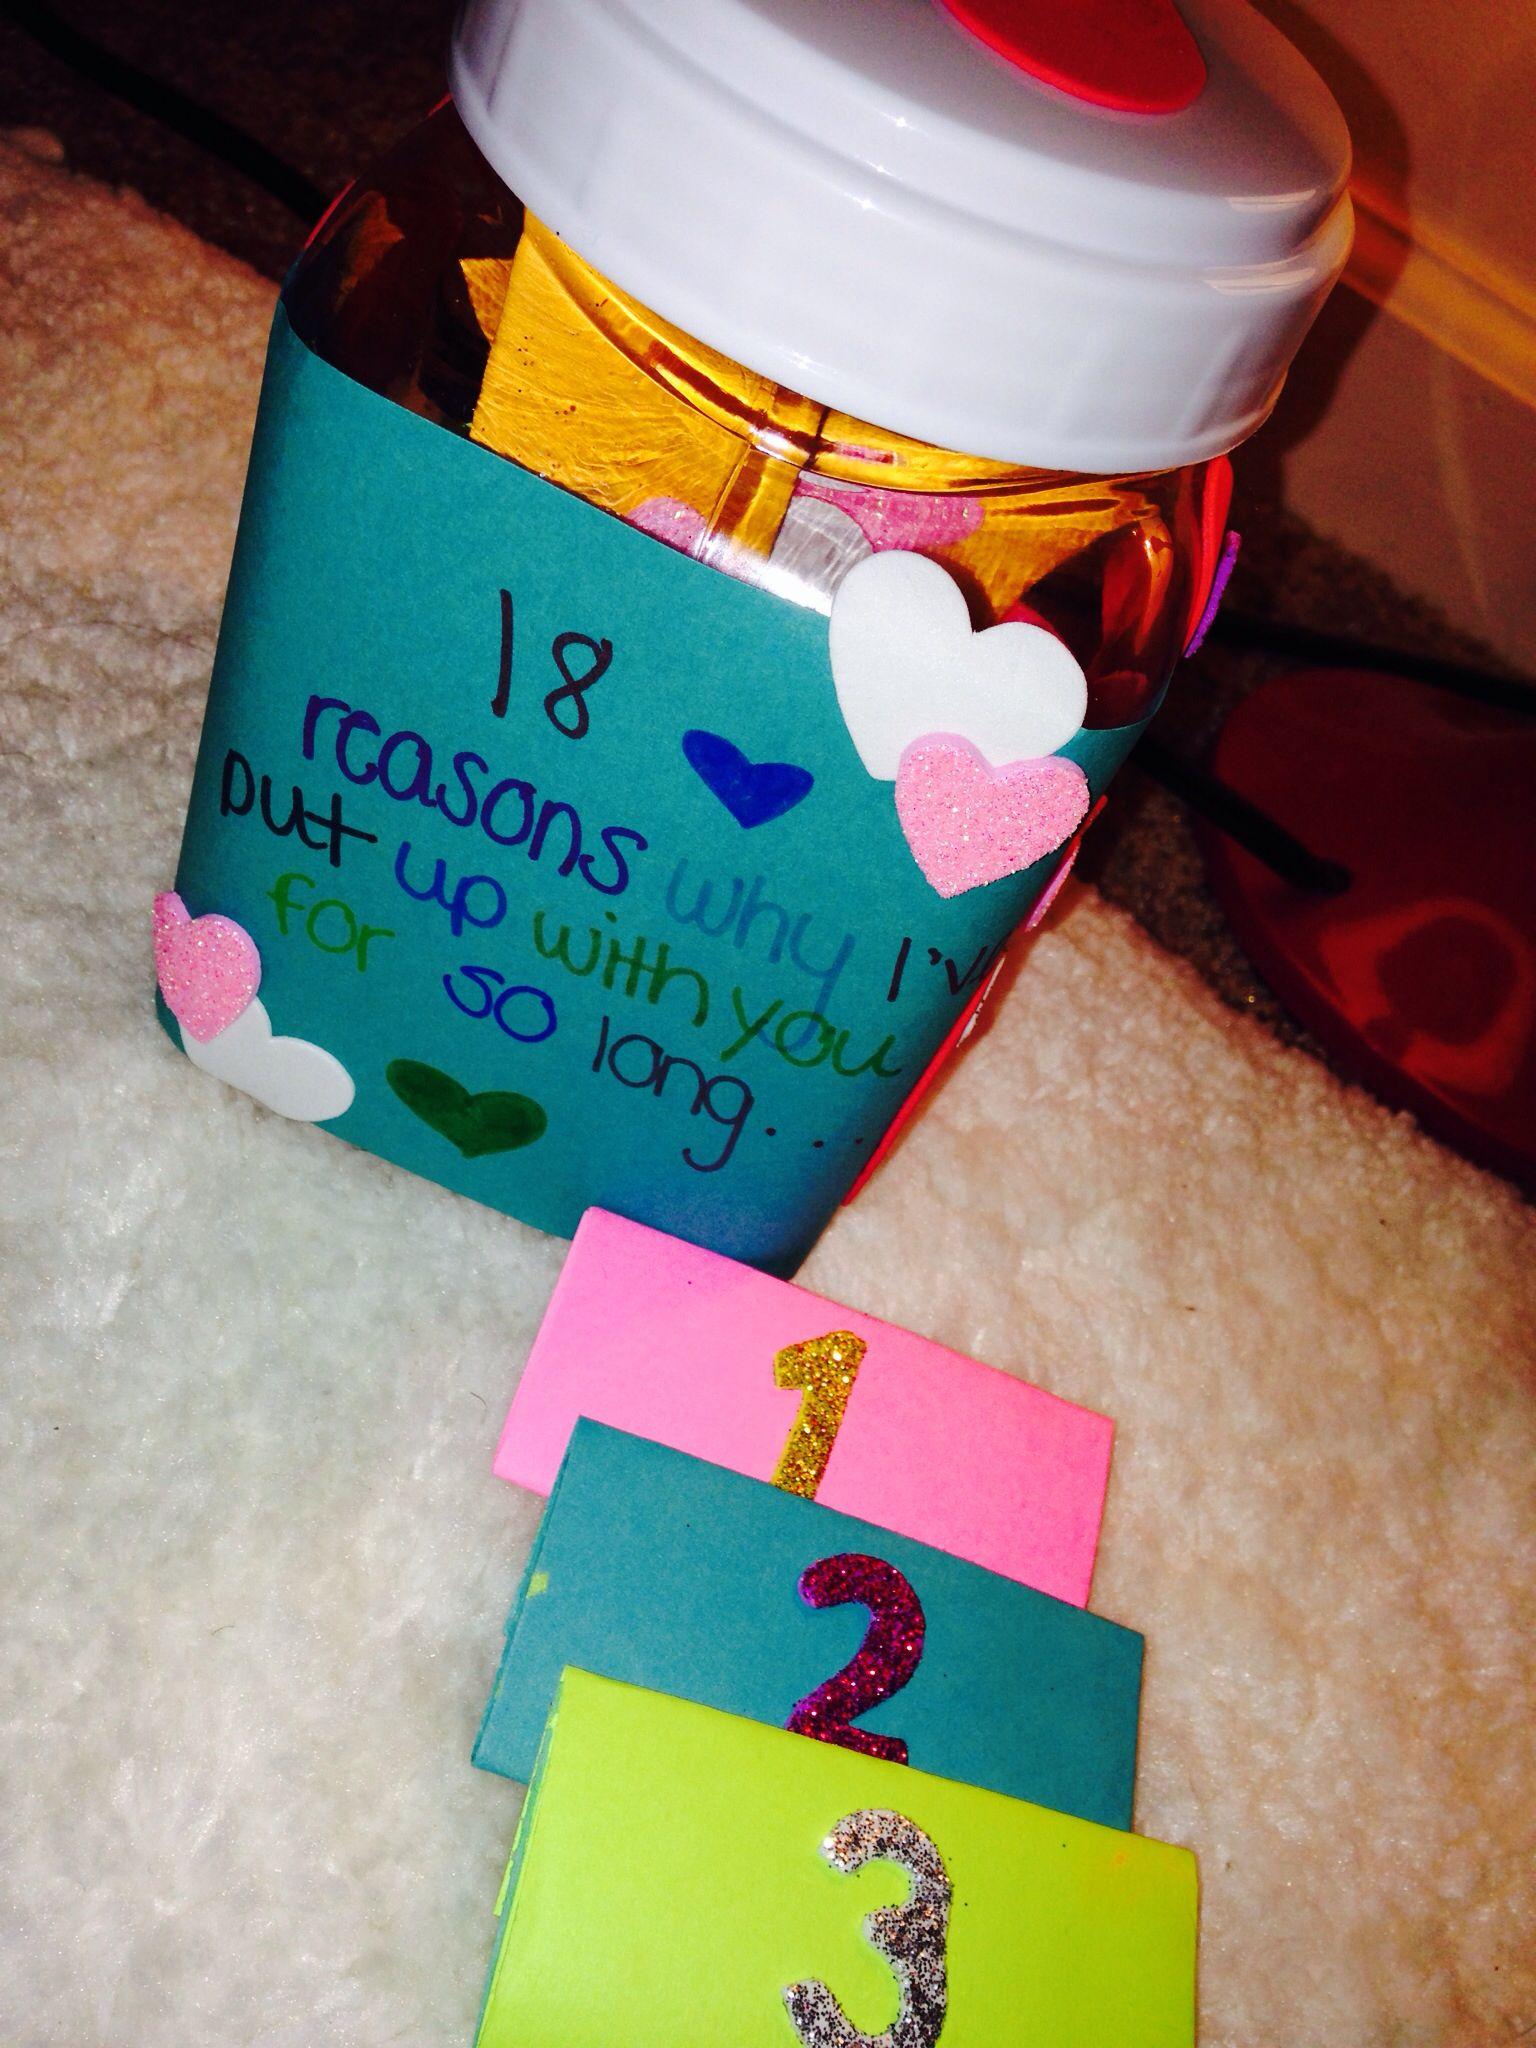 Cute gifts for boyfriend 18 reasons why i 39 ve put up with for Presents for boyfriends birthday